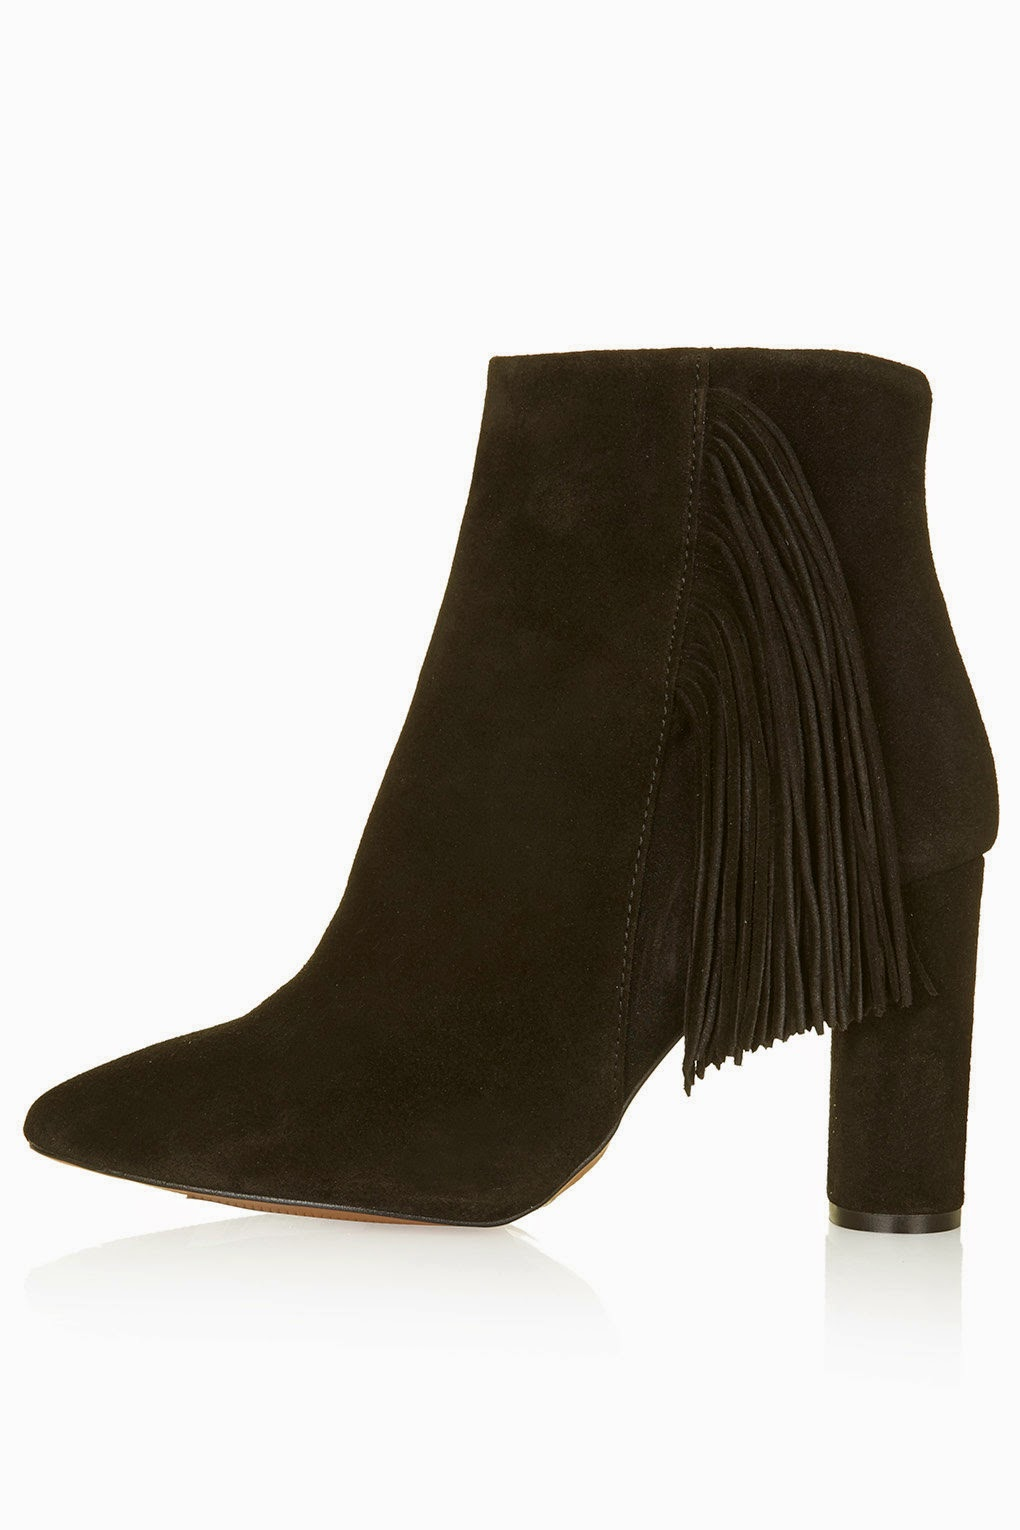 topshop black fringed boot, muskat boot,